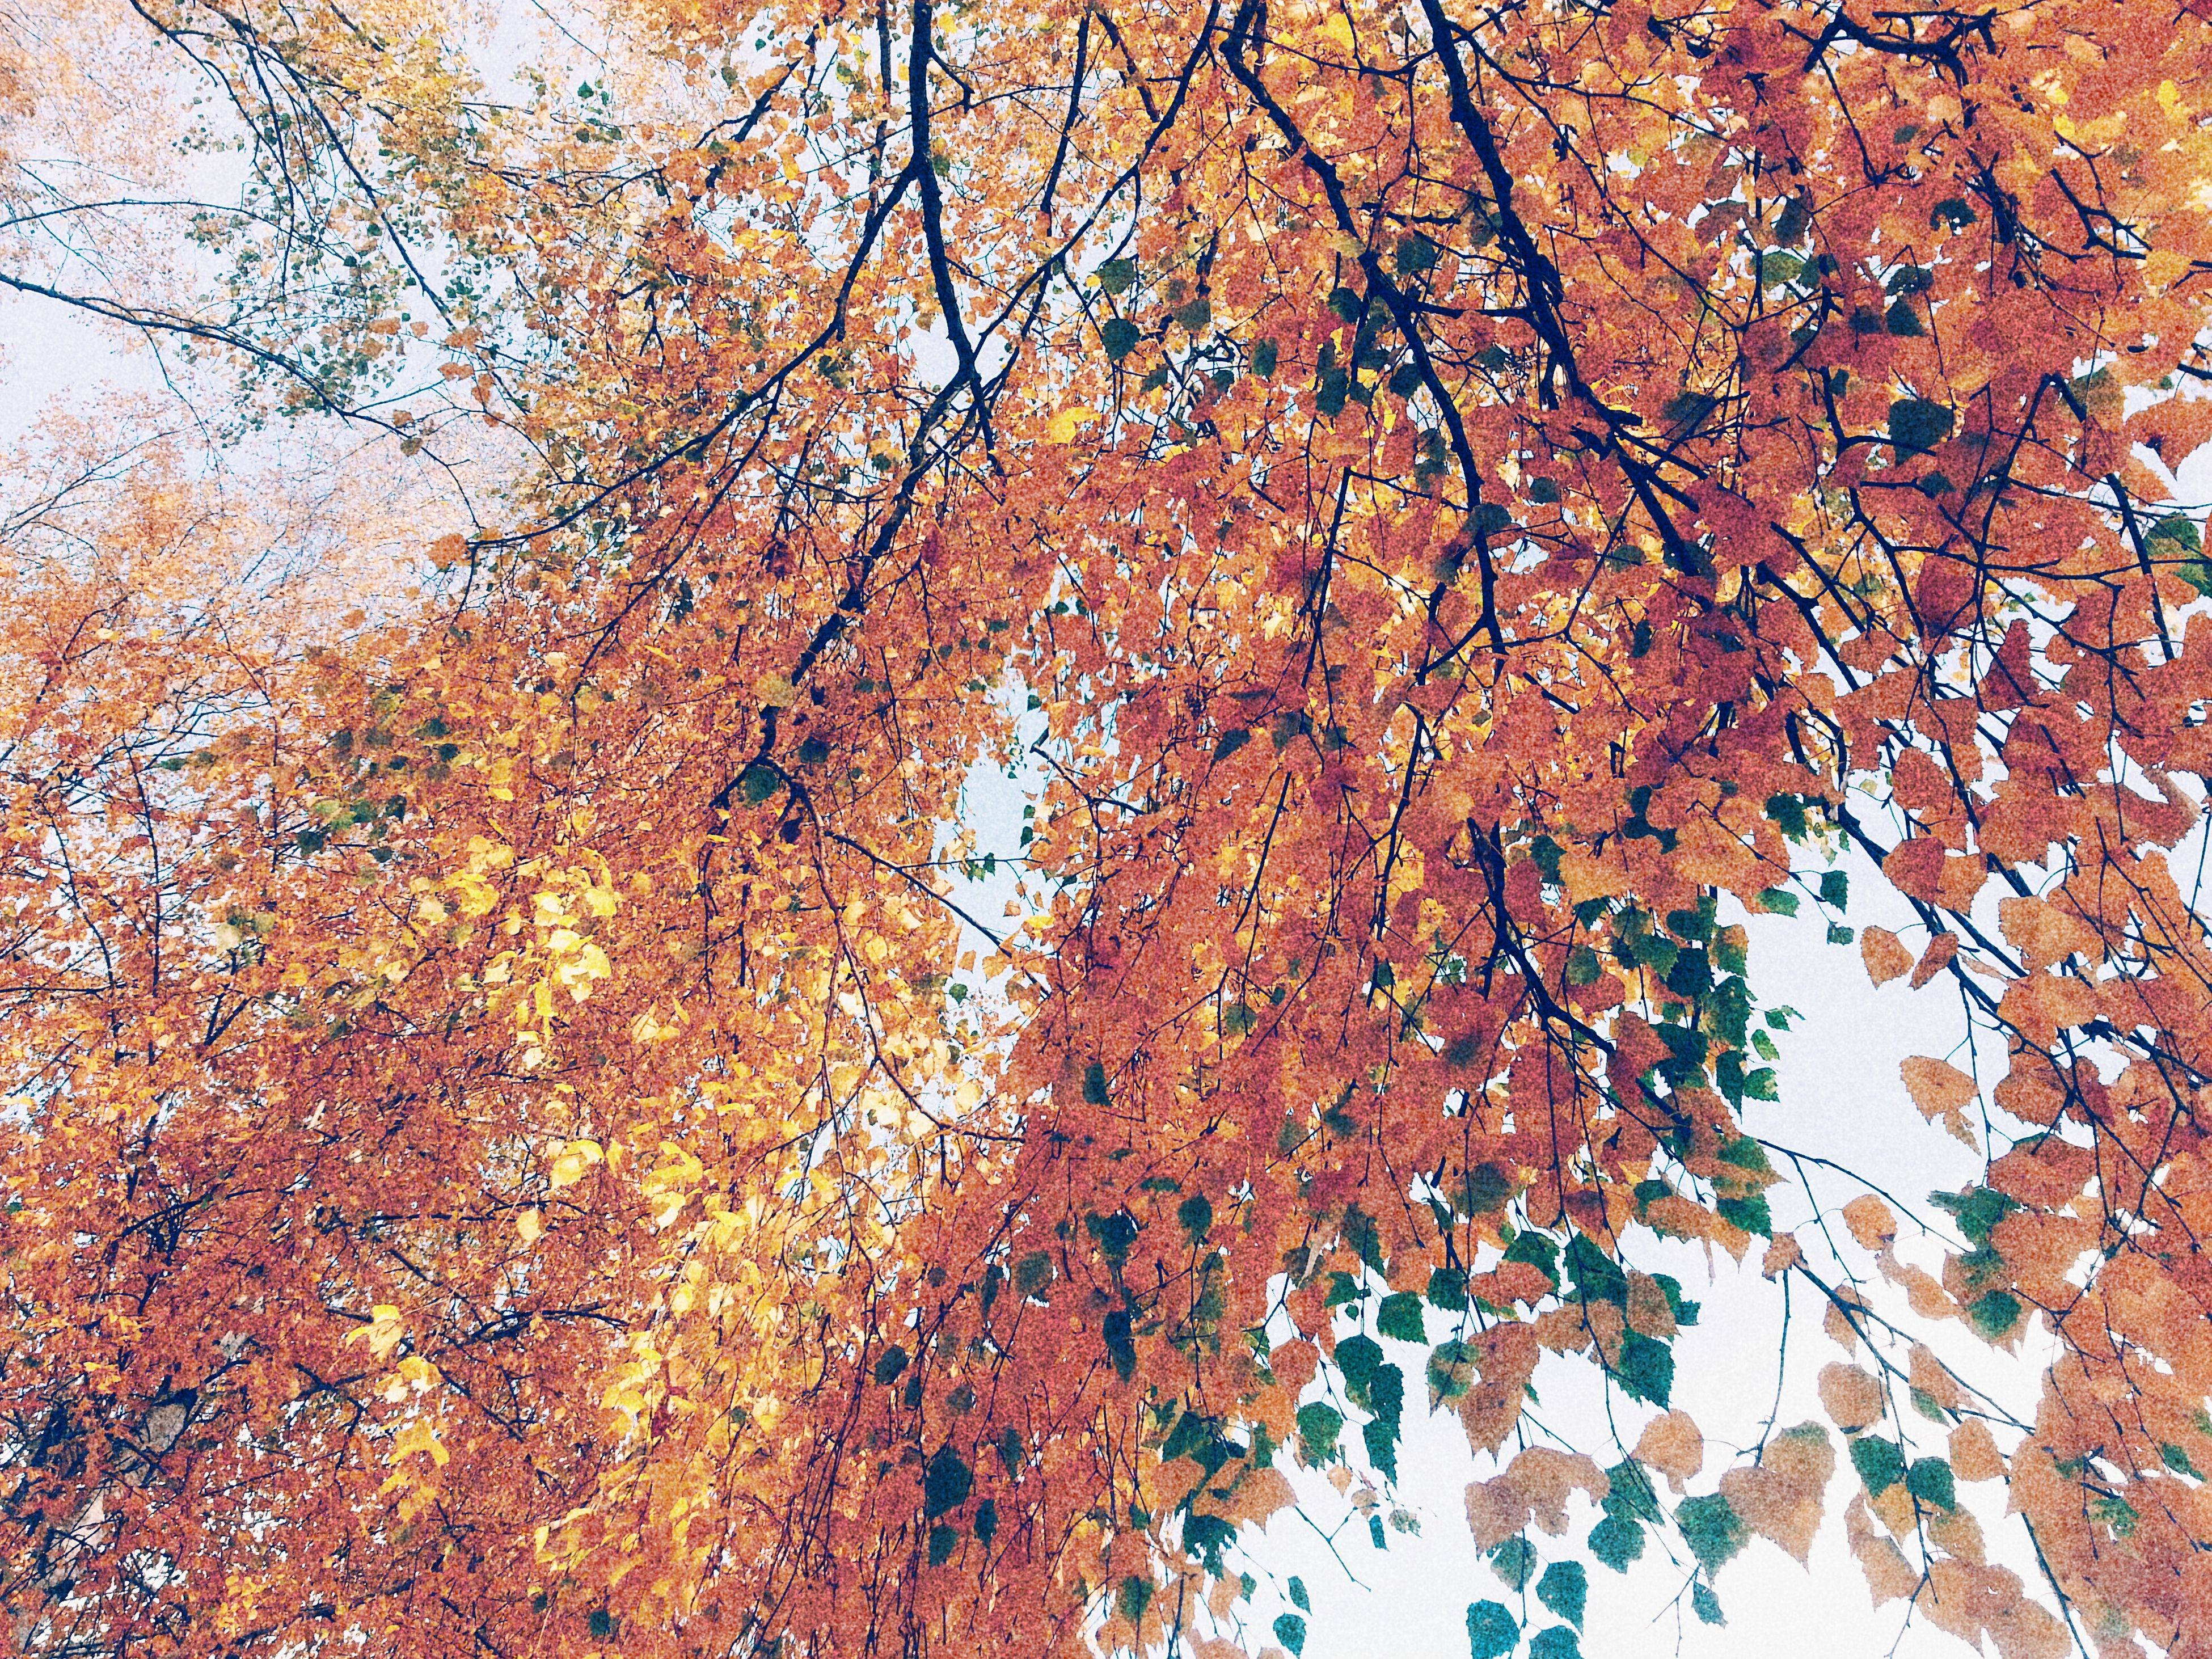 tree, branch, autumn, growth, full frame, low angle view, tree trunk, nature, backgrounds, leaf, change, tranquility, beauty in nature, season, day, no people, textured, outdoors, close-up, wall - building feature